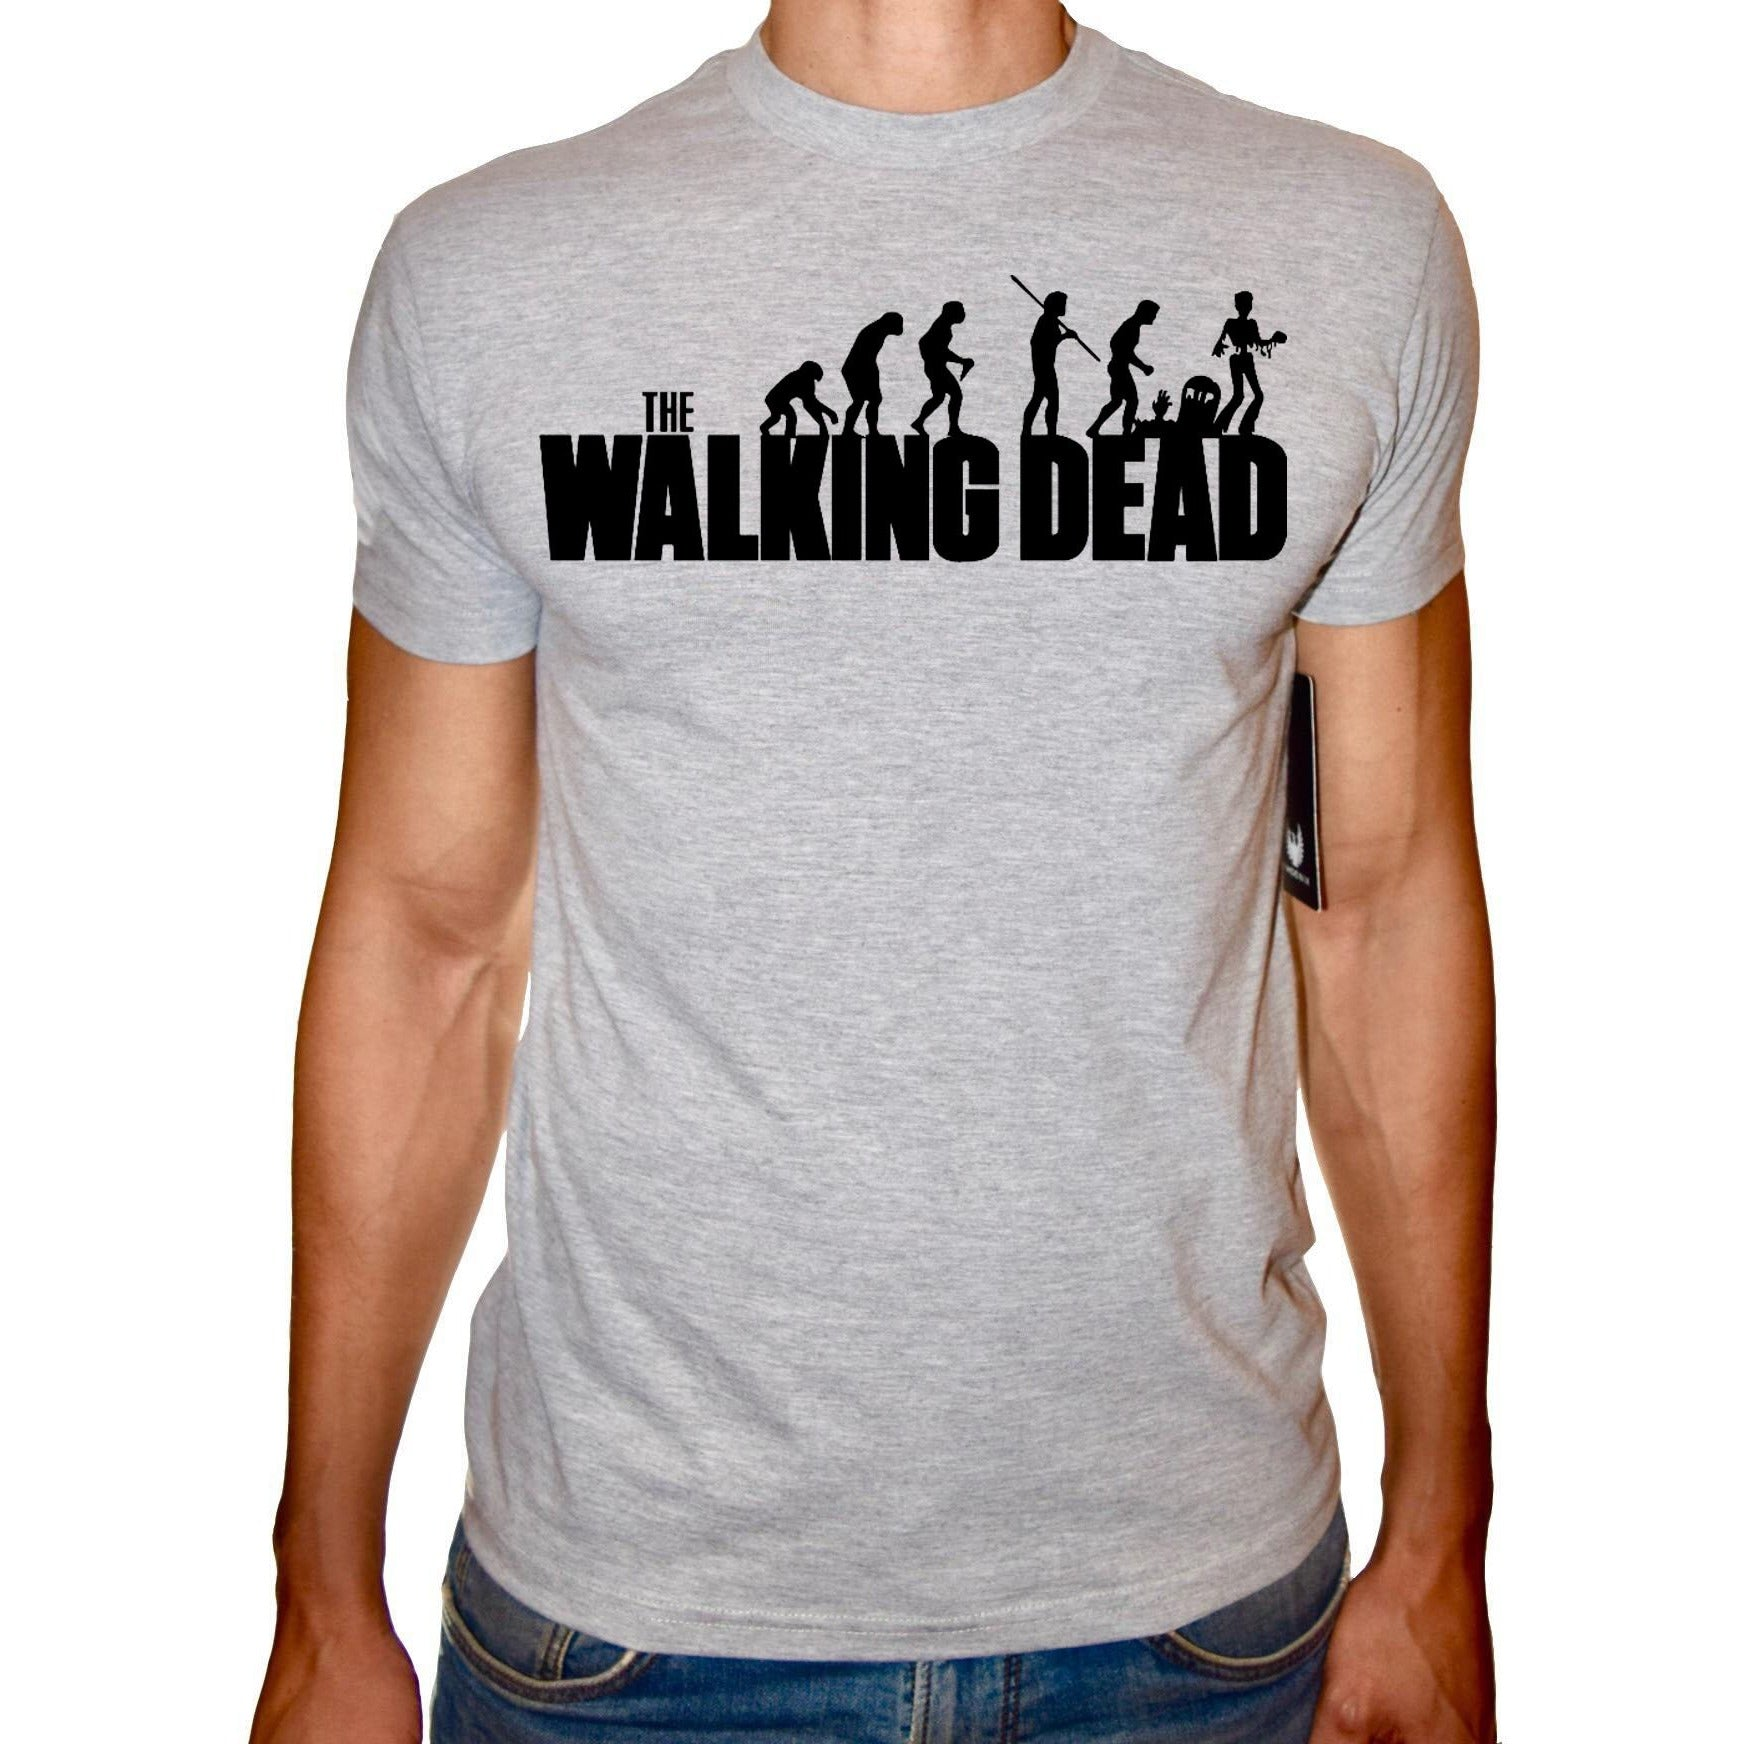 Phoenix GREY Round Neck Printed T-Shirt Men (The walking dead)